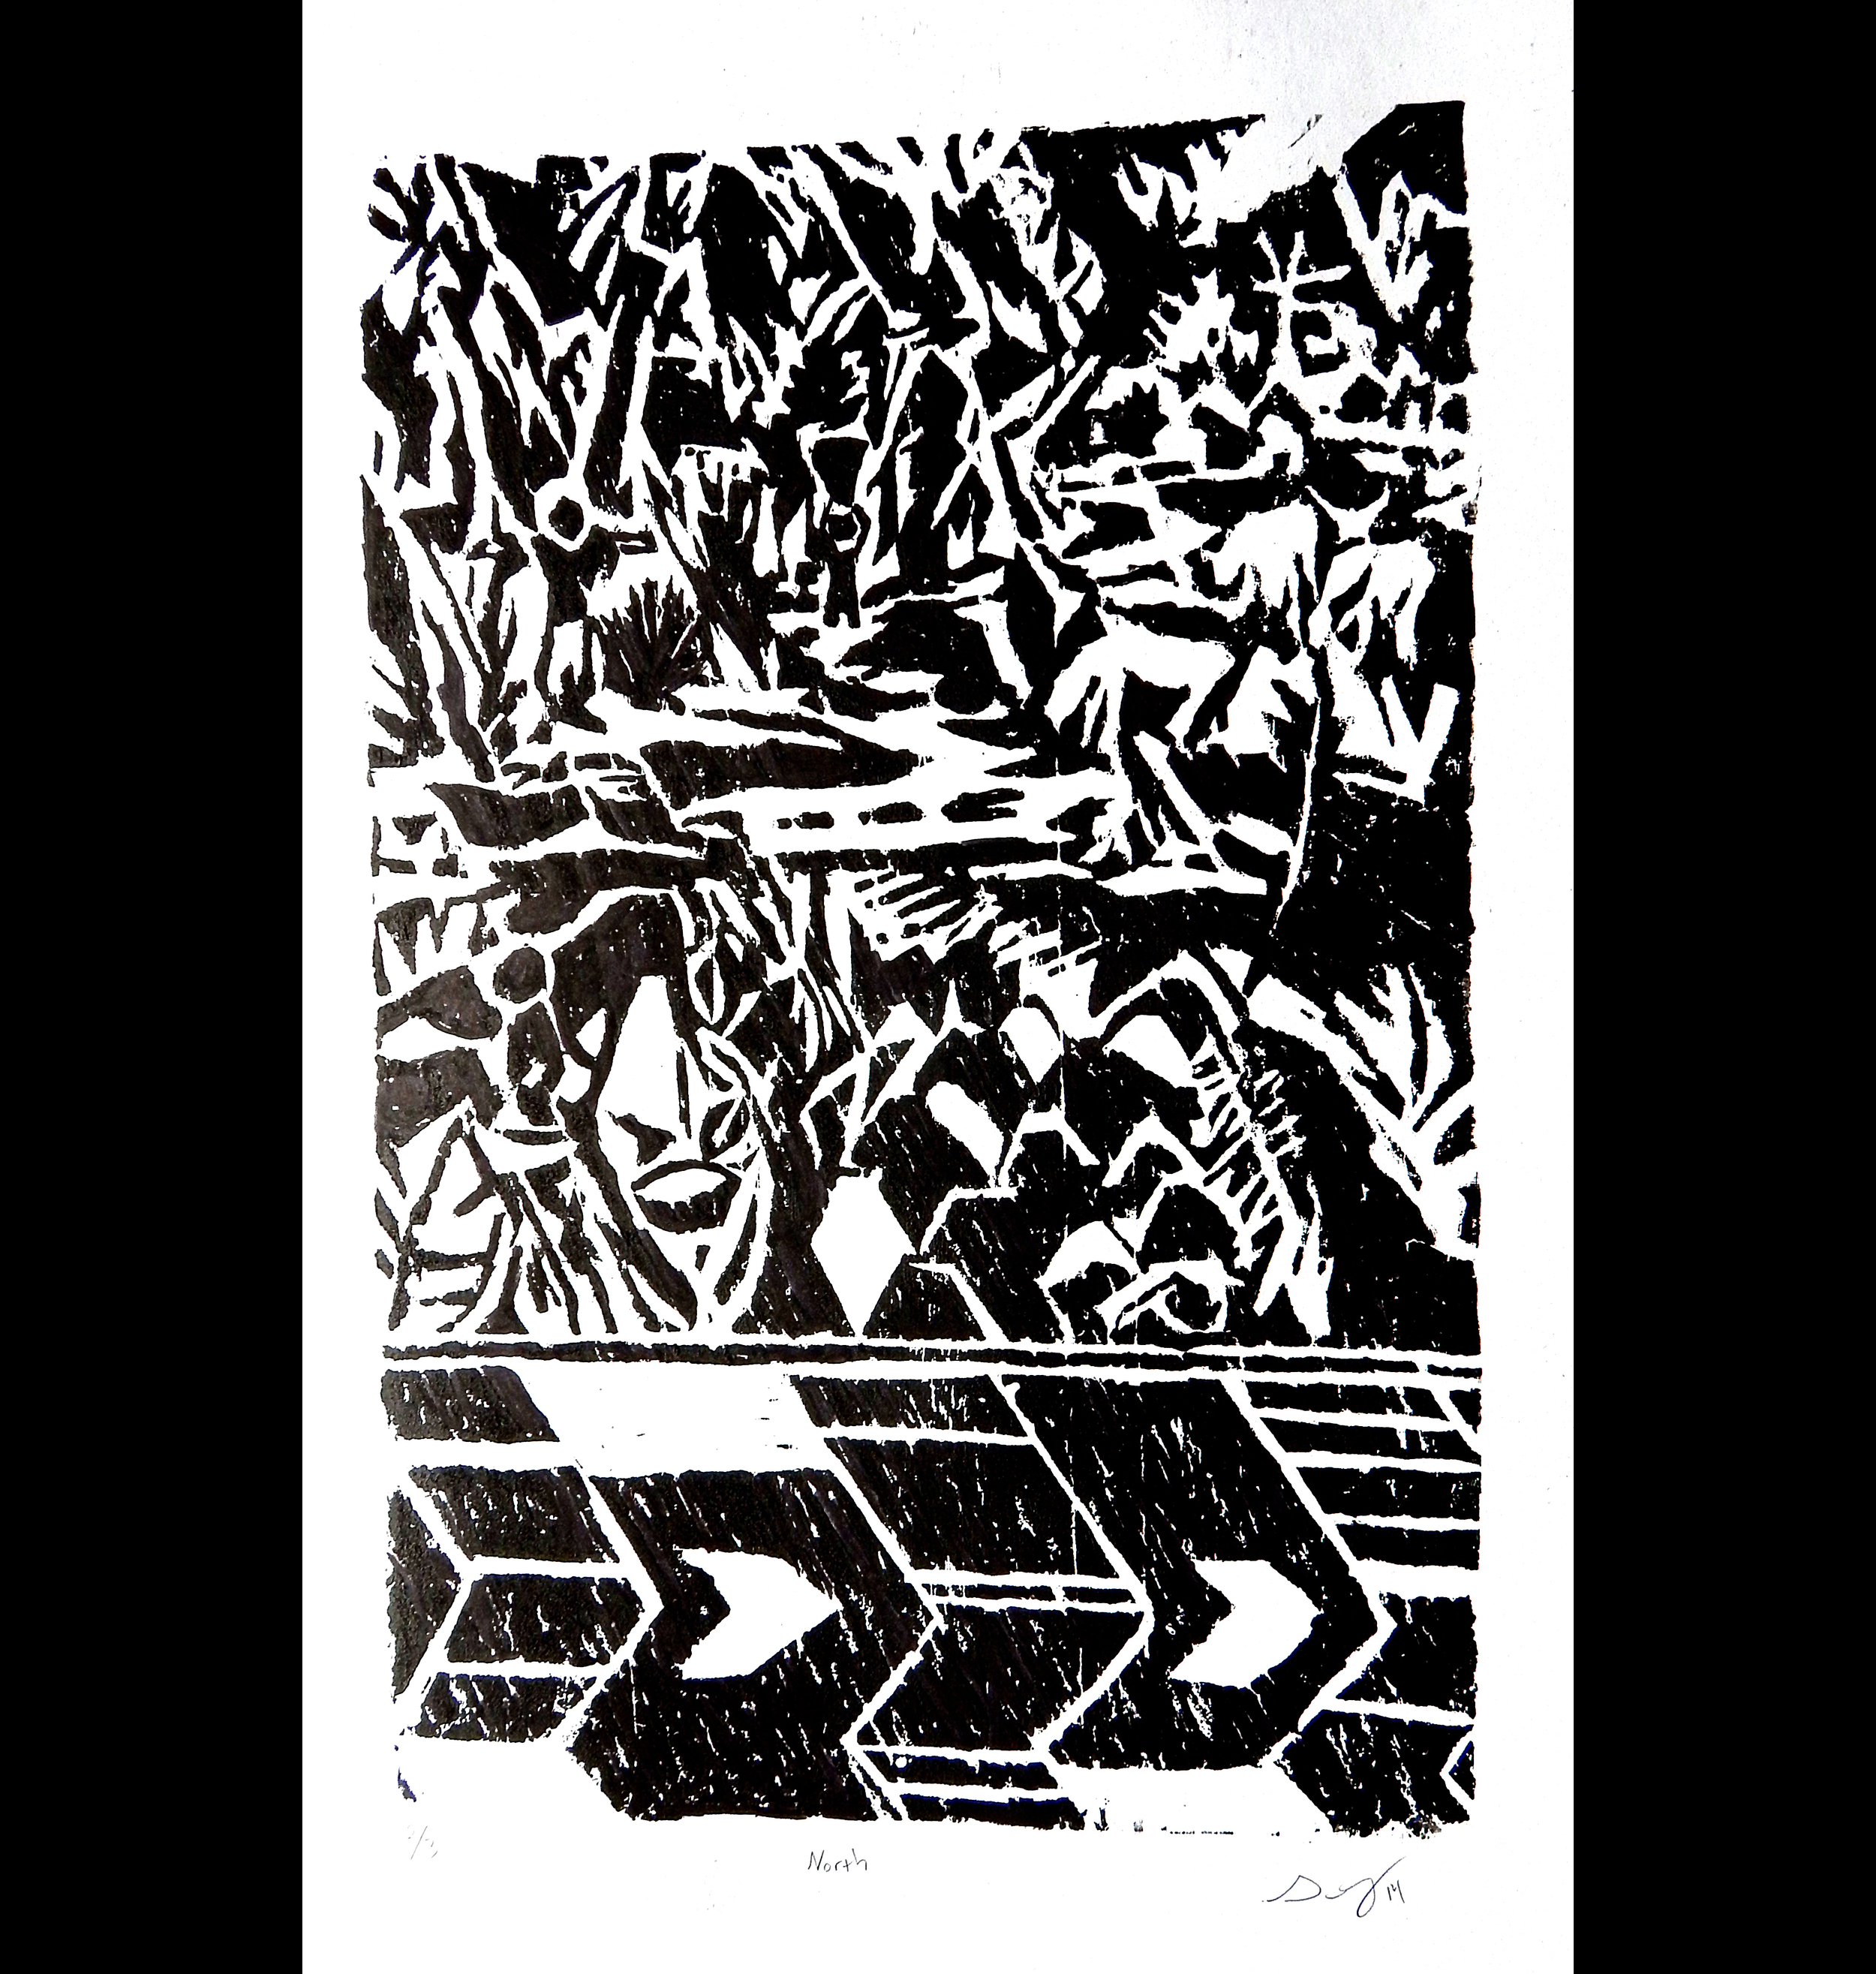 North (scene 2 of dyptic), 2014, woodcut